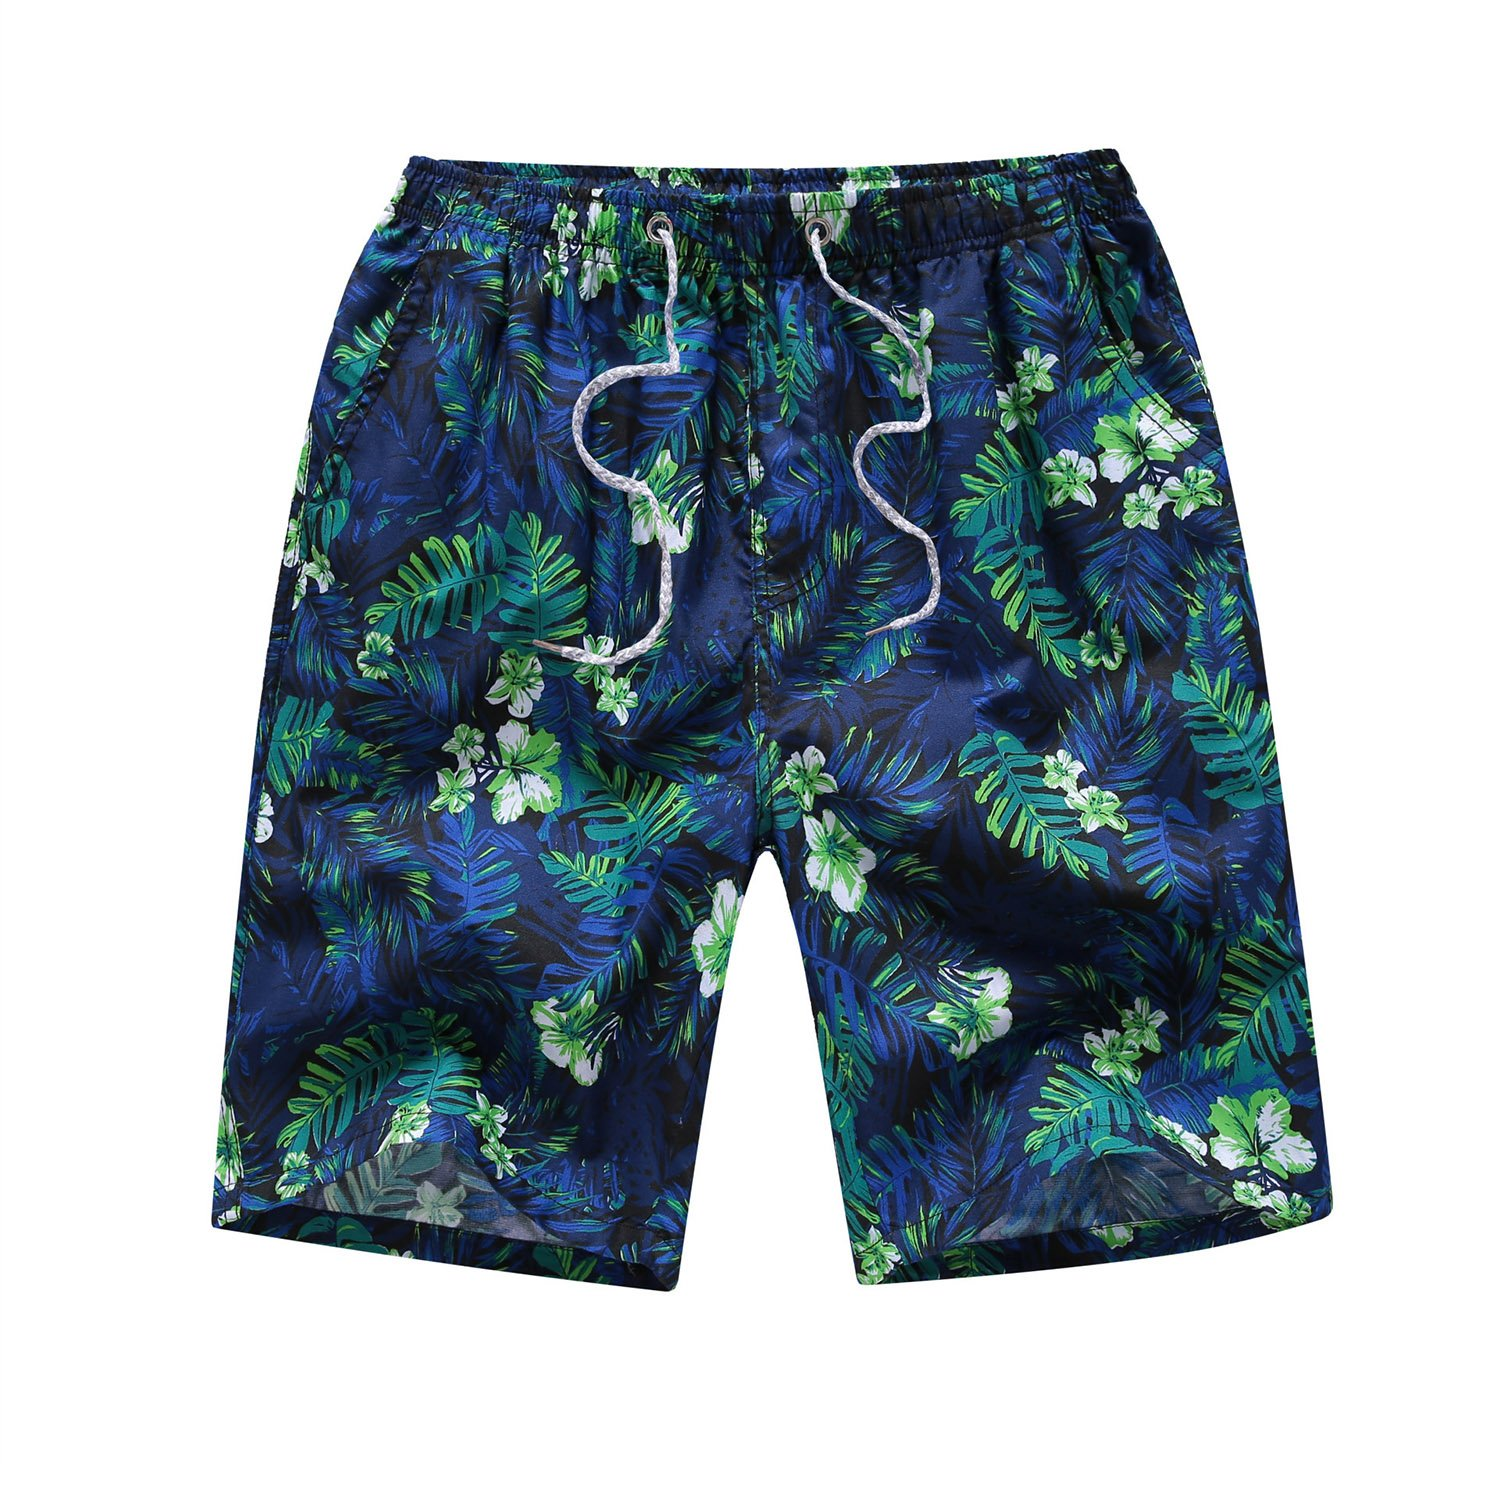 Justay Men's Printing Quick Dry Beach Shorts Swim Trunk